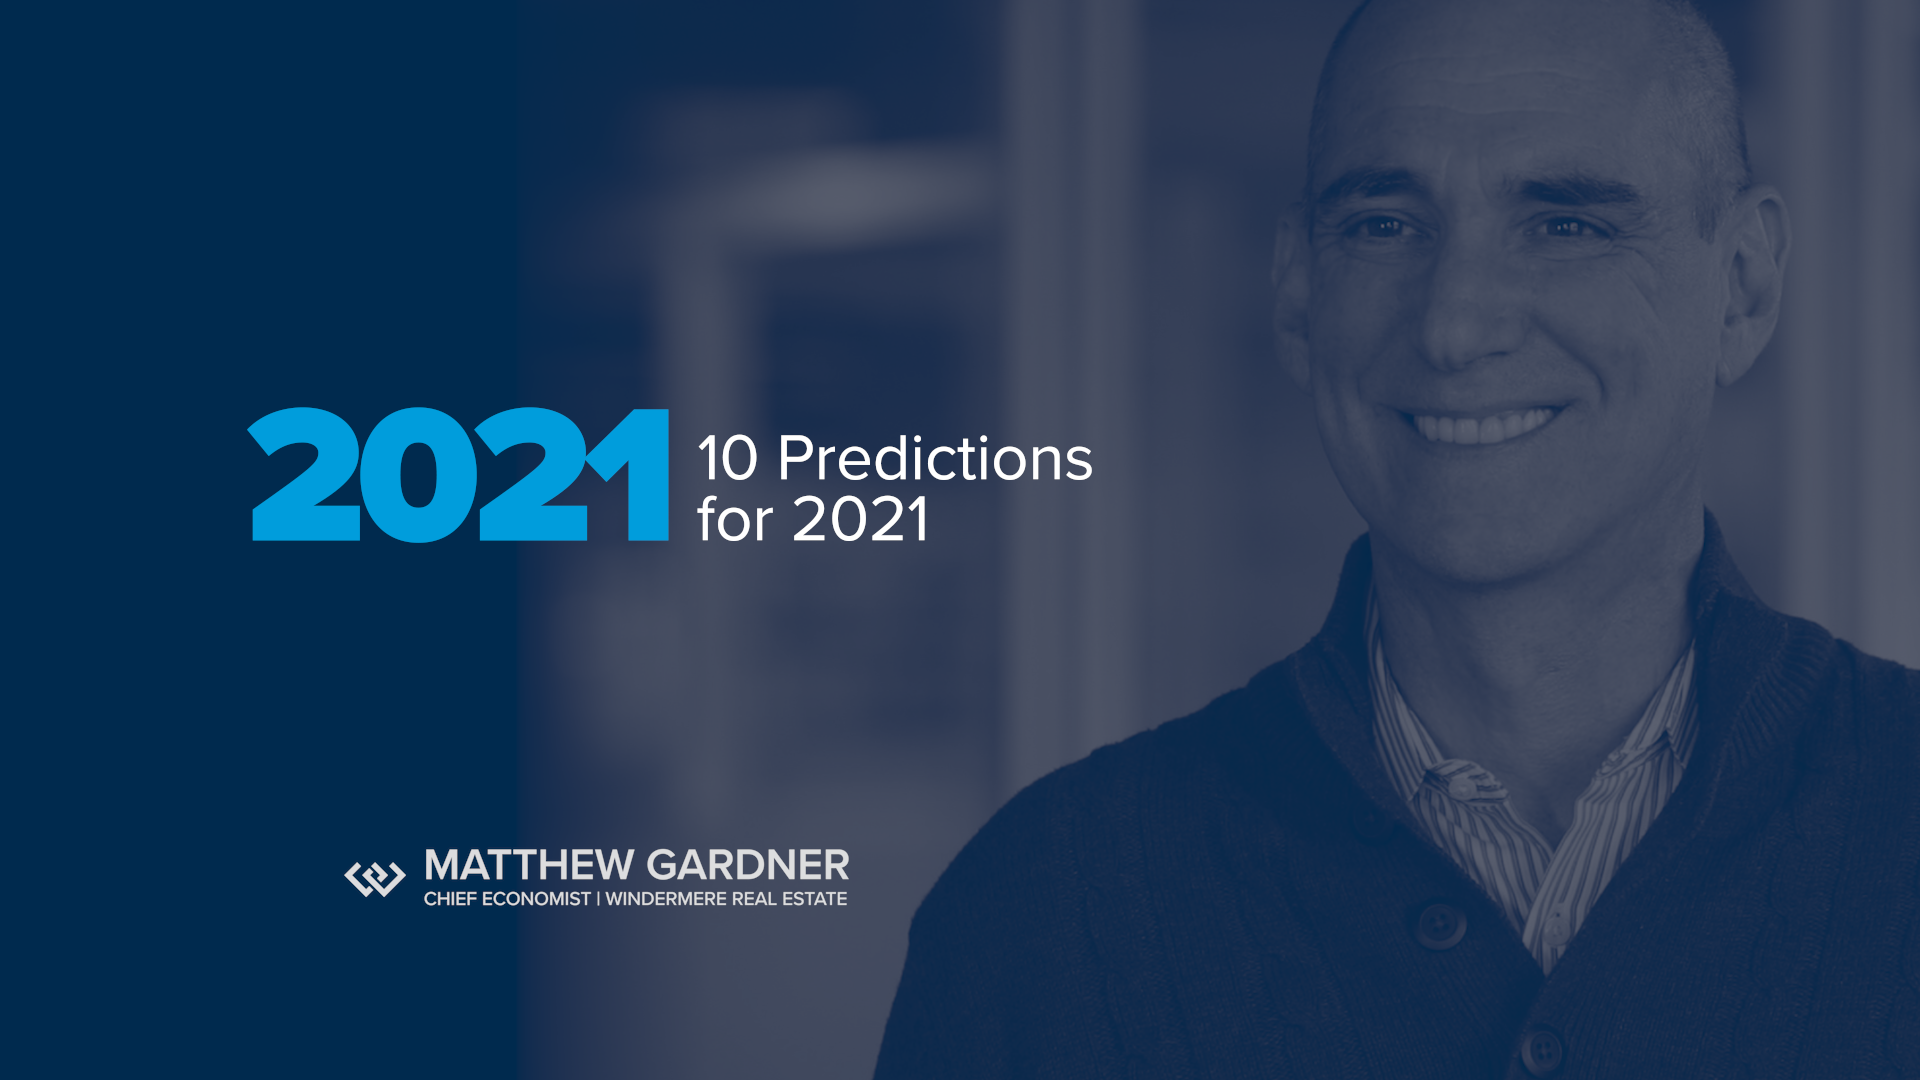 "Shaded photo of Matthew Gardner with overlapping text that reads ""2021 10 Predictions for 2021 by Matthew Gardner Chief Economist, Windermere Real Estate"""